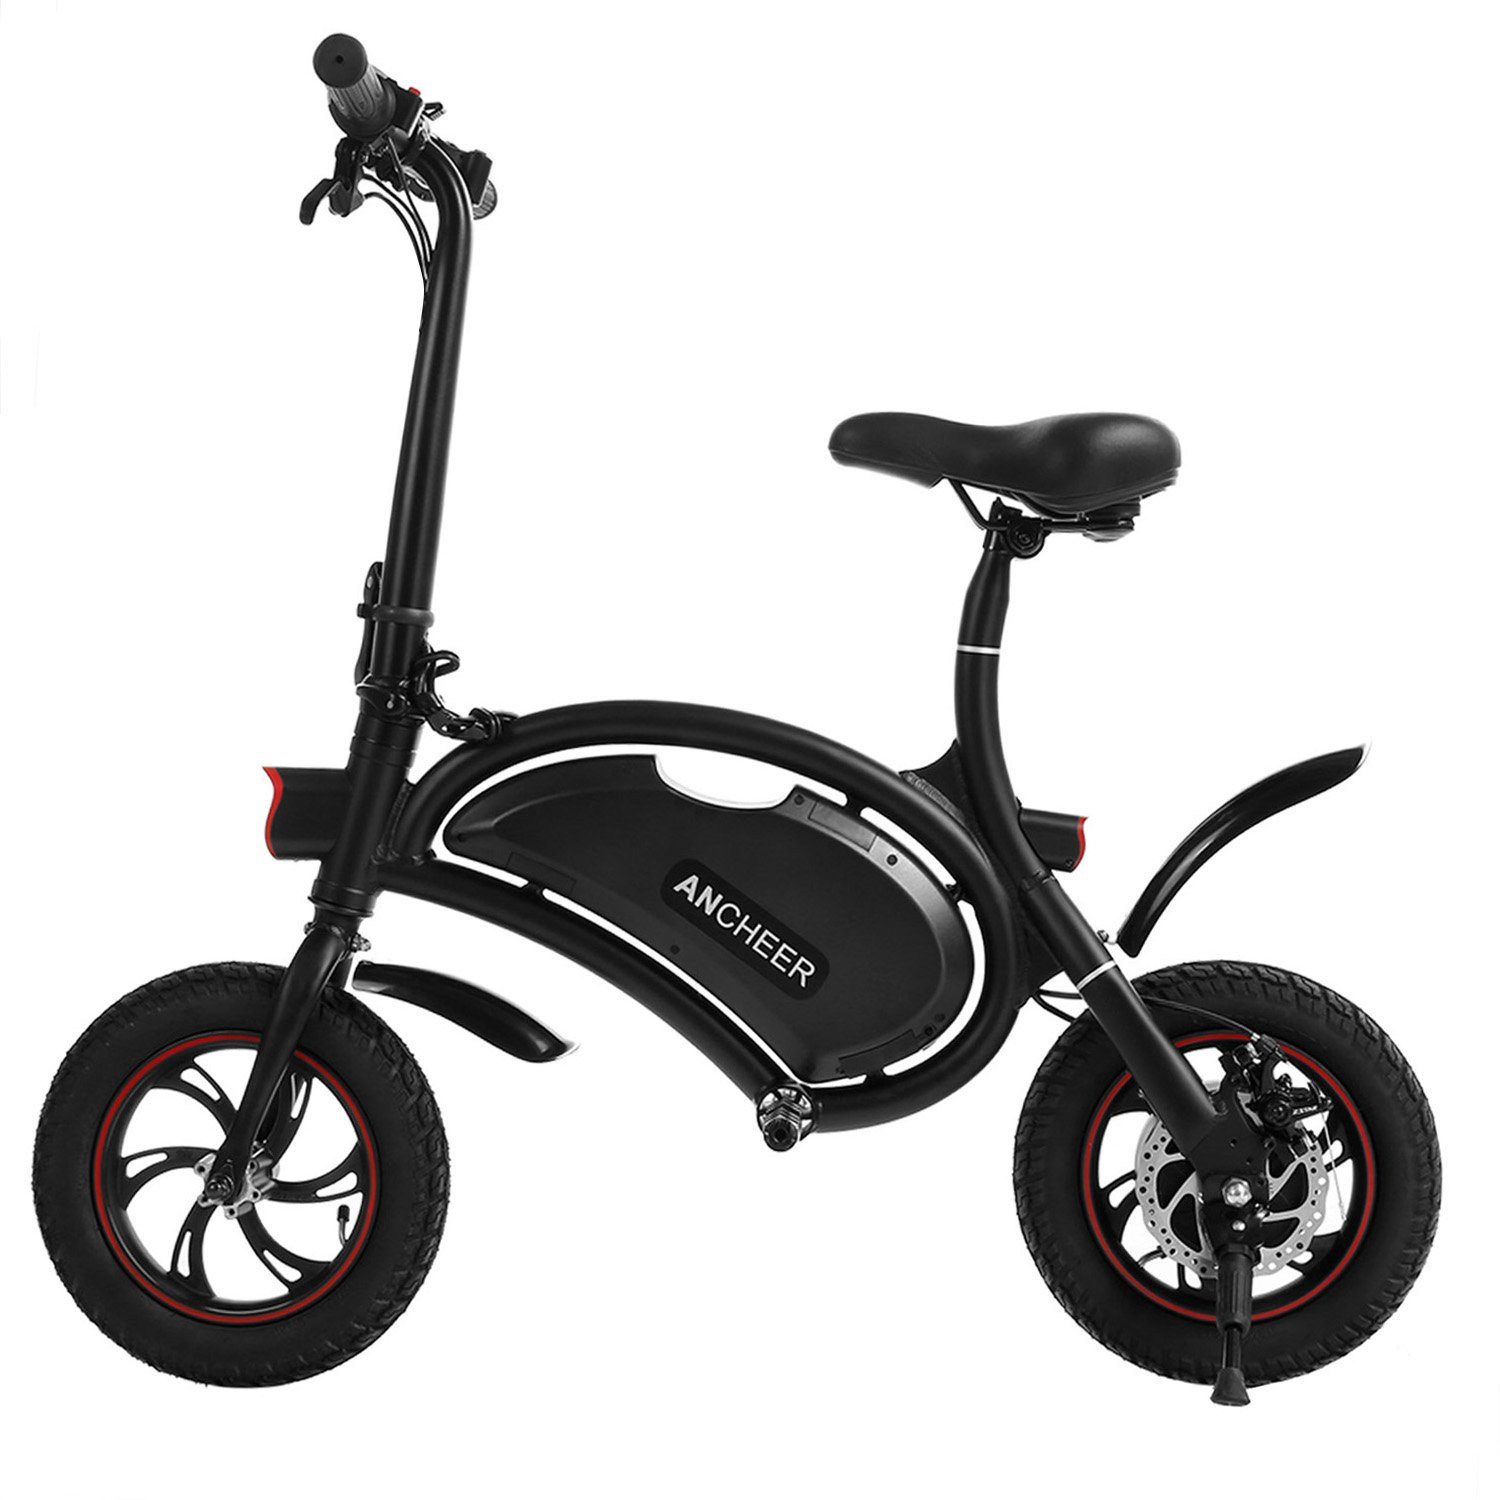 ANCHEER Folding Electric Bicycle/E-Bike/Scooter 350W Ebike with 12 Mile Range, APP Speed Setting (Black)